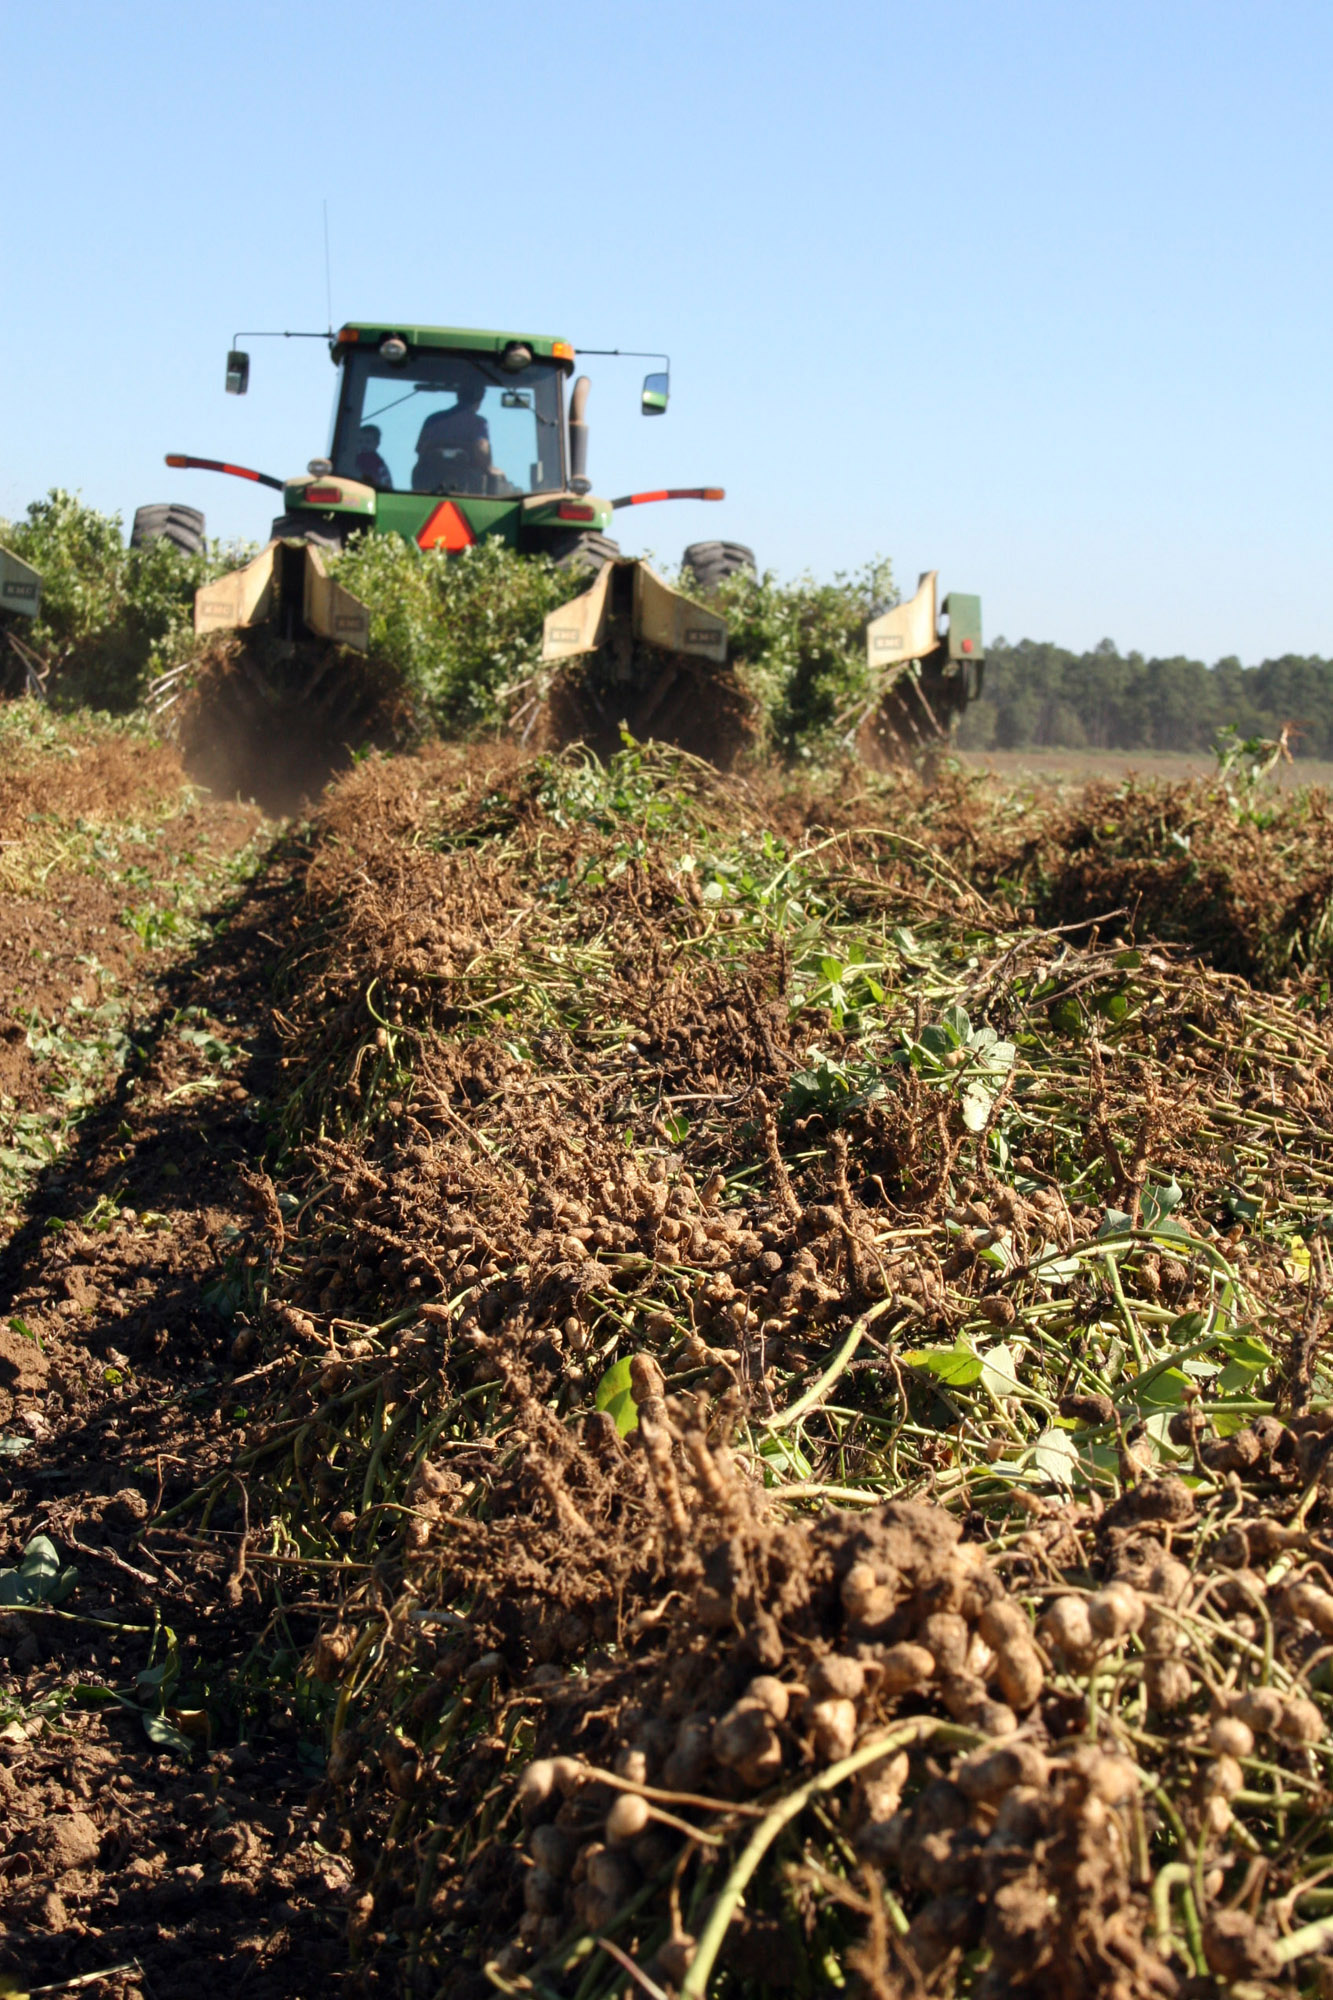 Since July, white mold has caused problems for peanut growers.